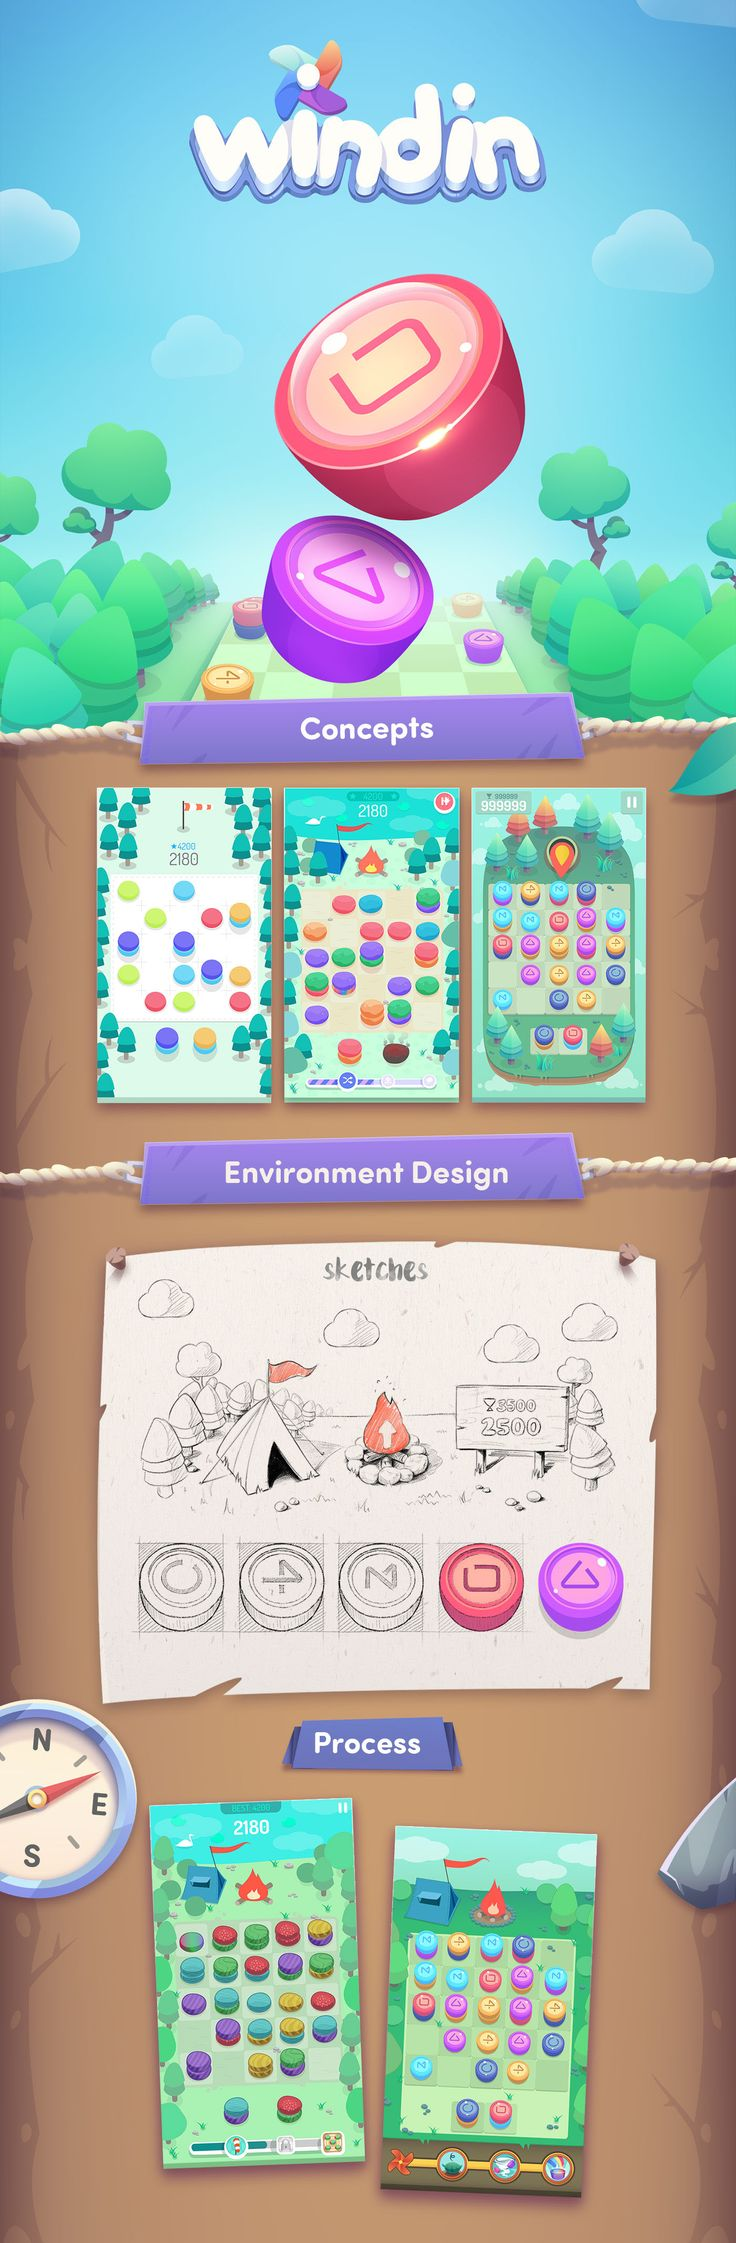 Windin is a mobile puzzle game made by No-pact Game Studio based in Istanbul. We designed and created all the visual content of the game. Hope you enjoy^^